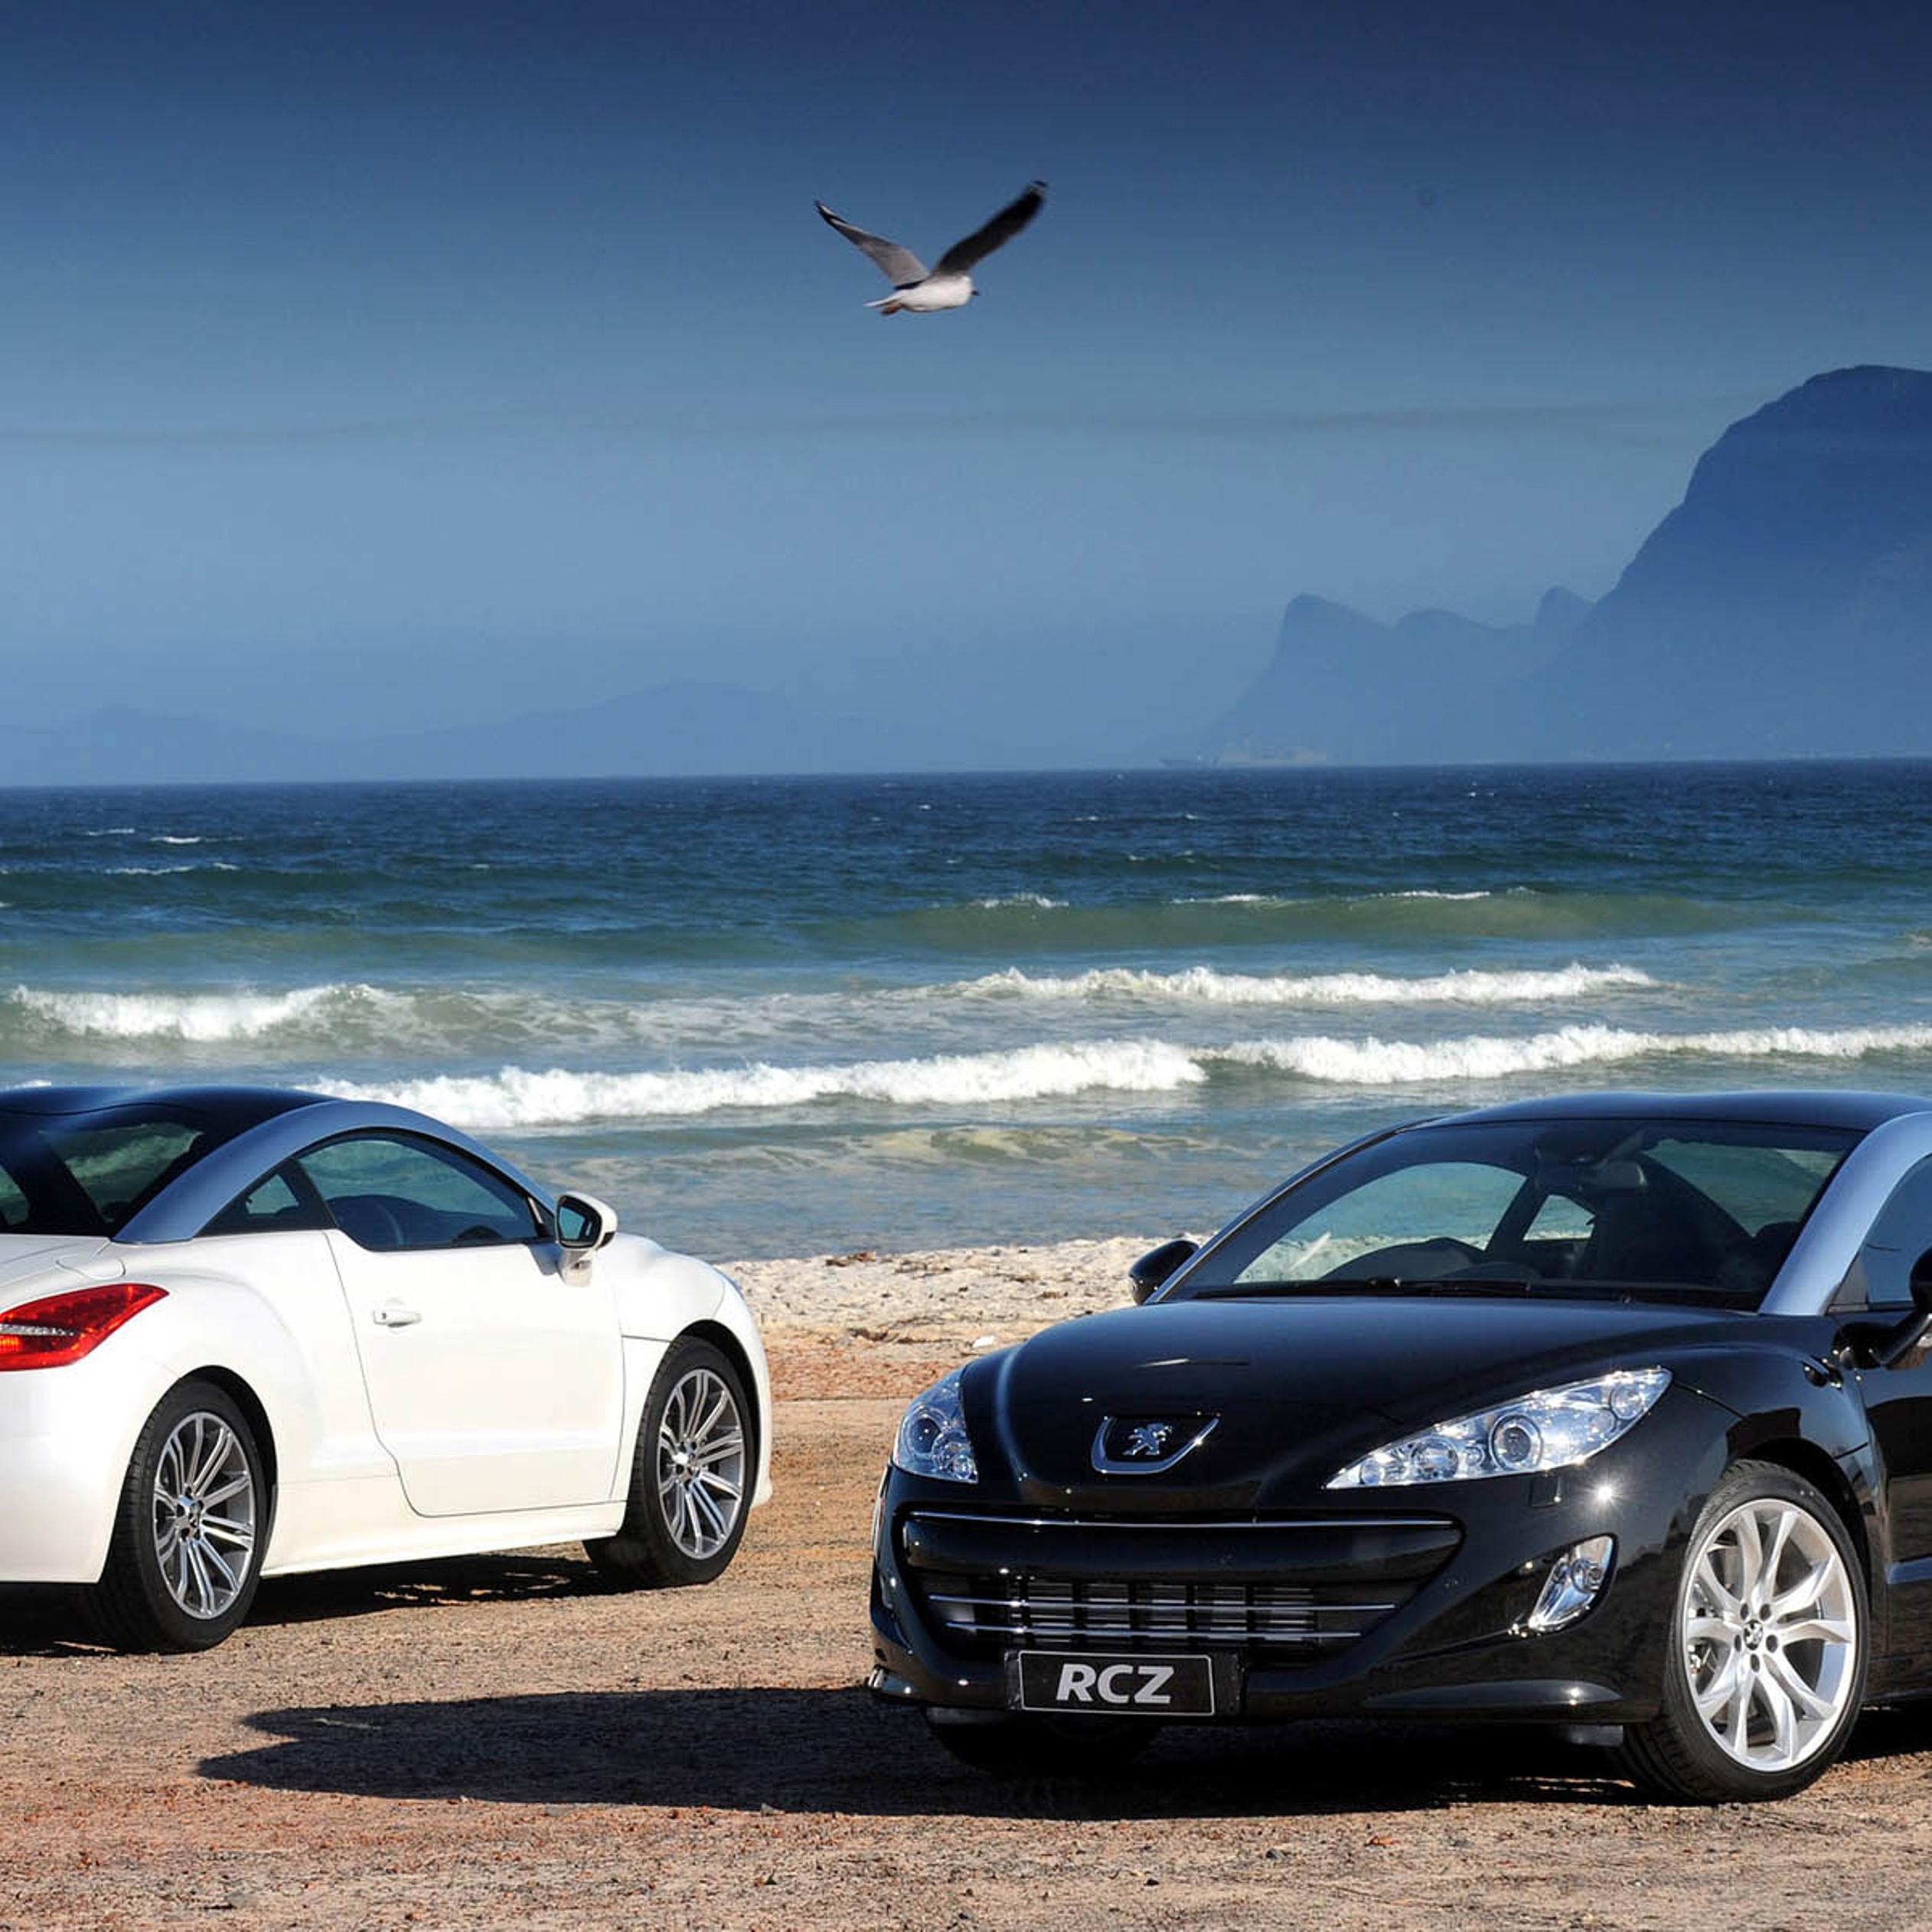 Two Peugeot RCZ On The Beach Wallpaper Download 2524x2524